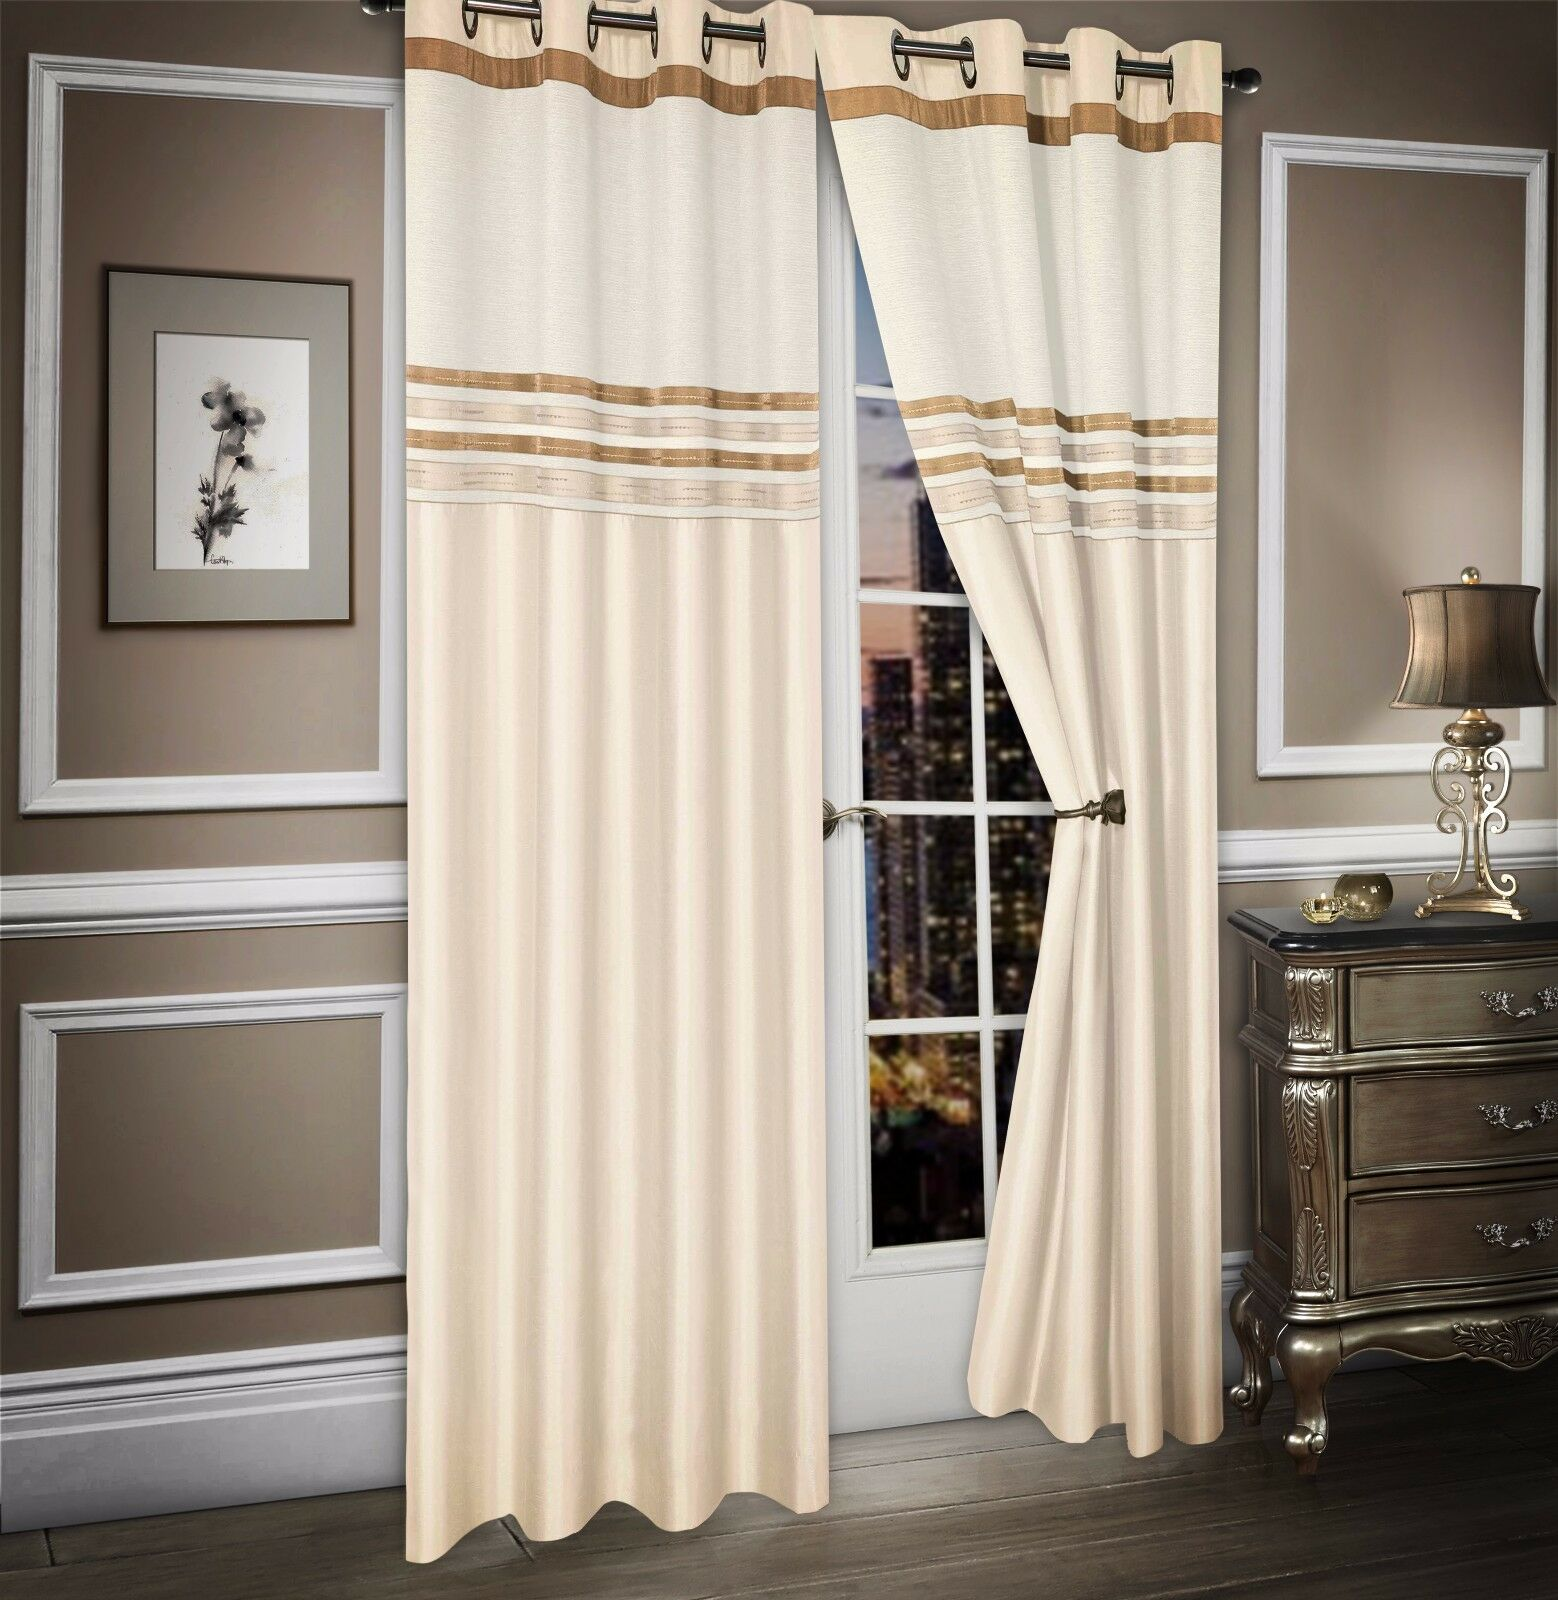 window thermal curtains joss reviews curtain main in panel rod tone colton pocket pdp treatments single blackout solid